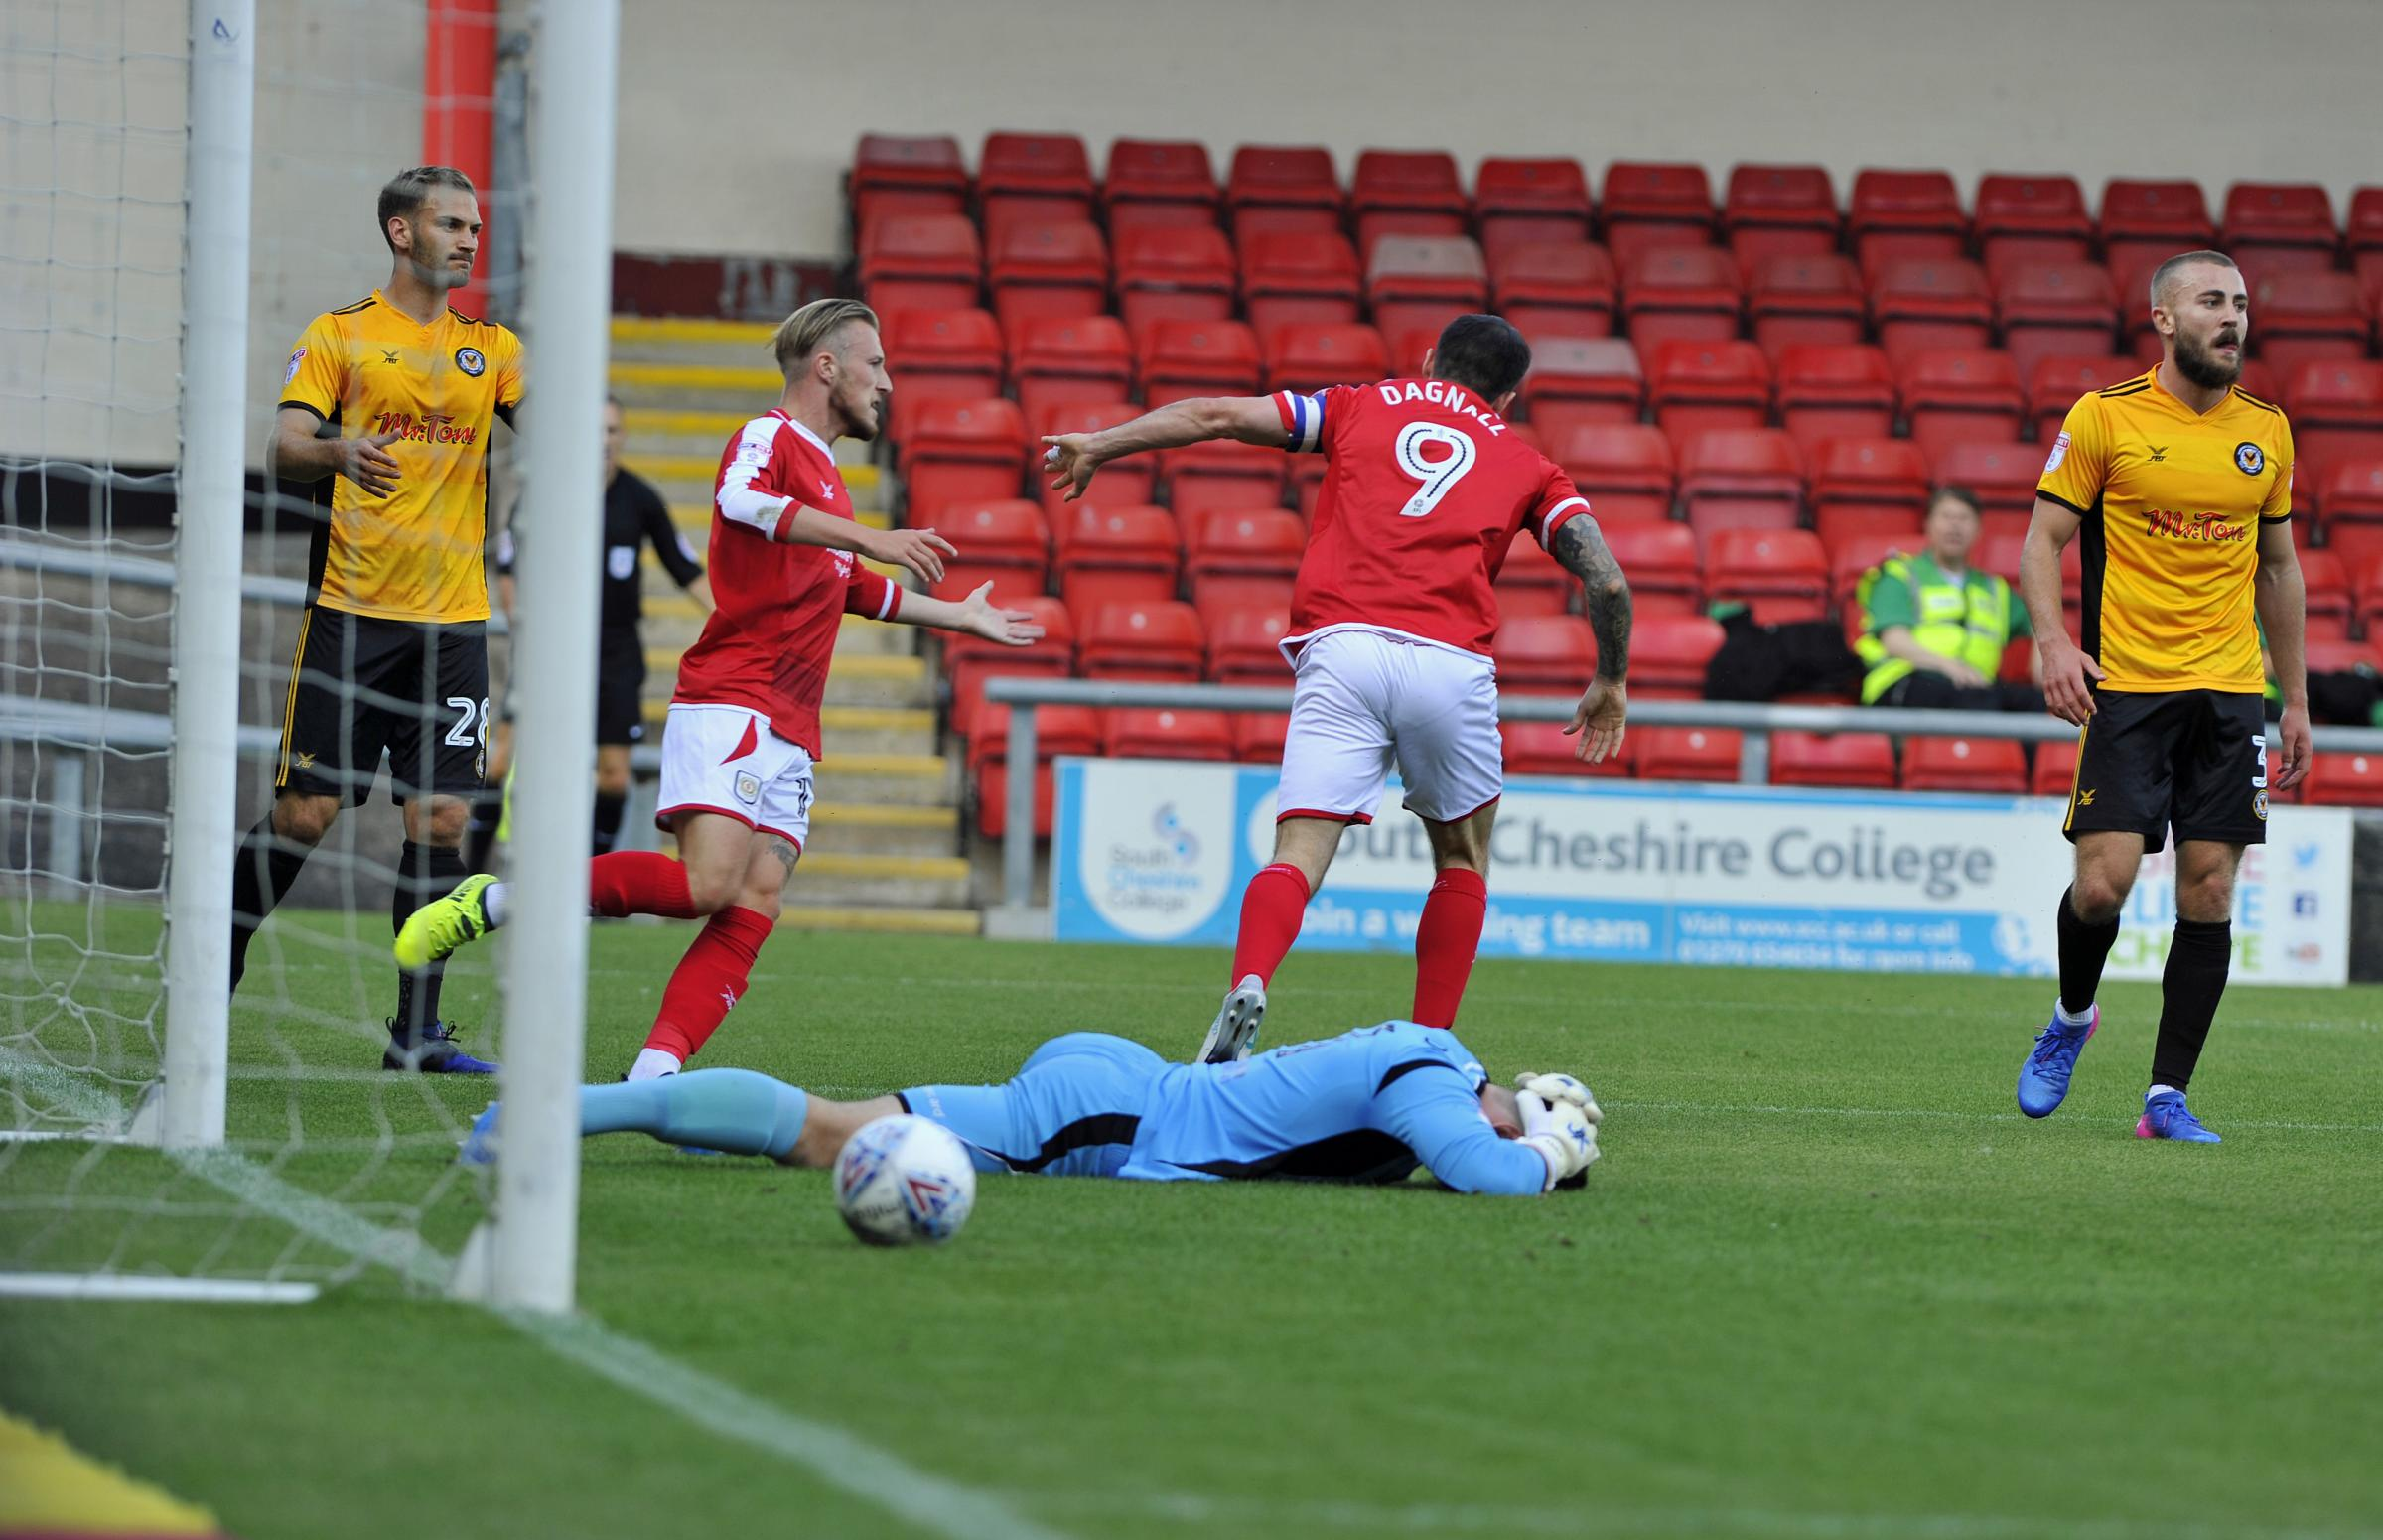 Chris Dagnall wheels away after scoring for The Alex against Newport on Saturday. Picture by Steve Finch